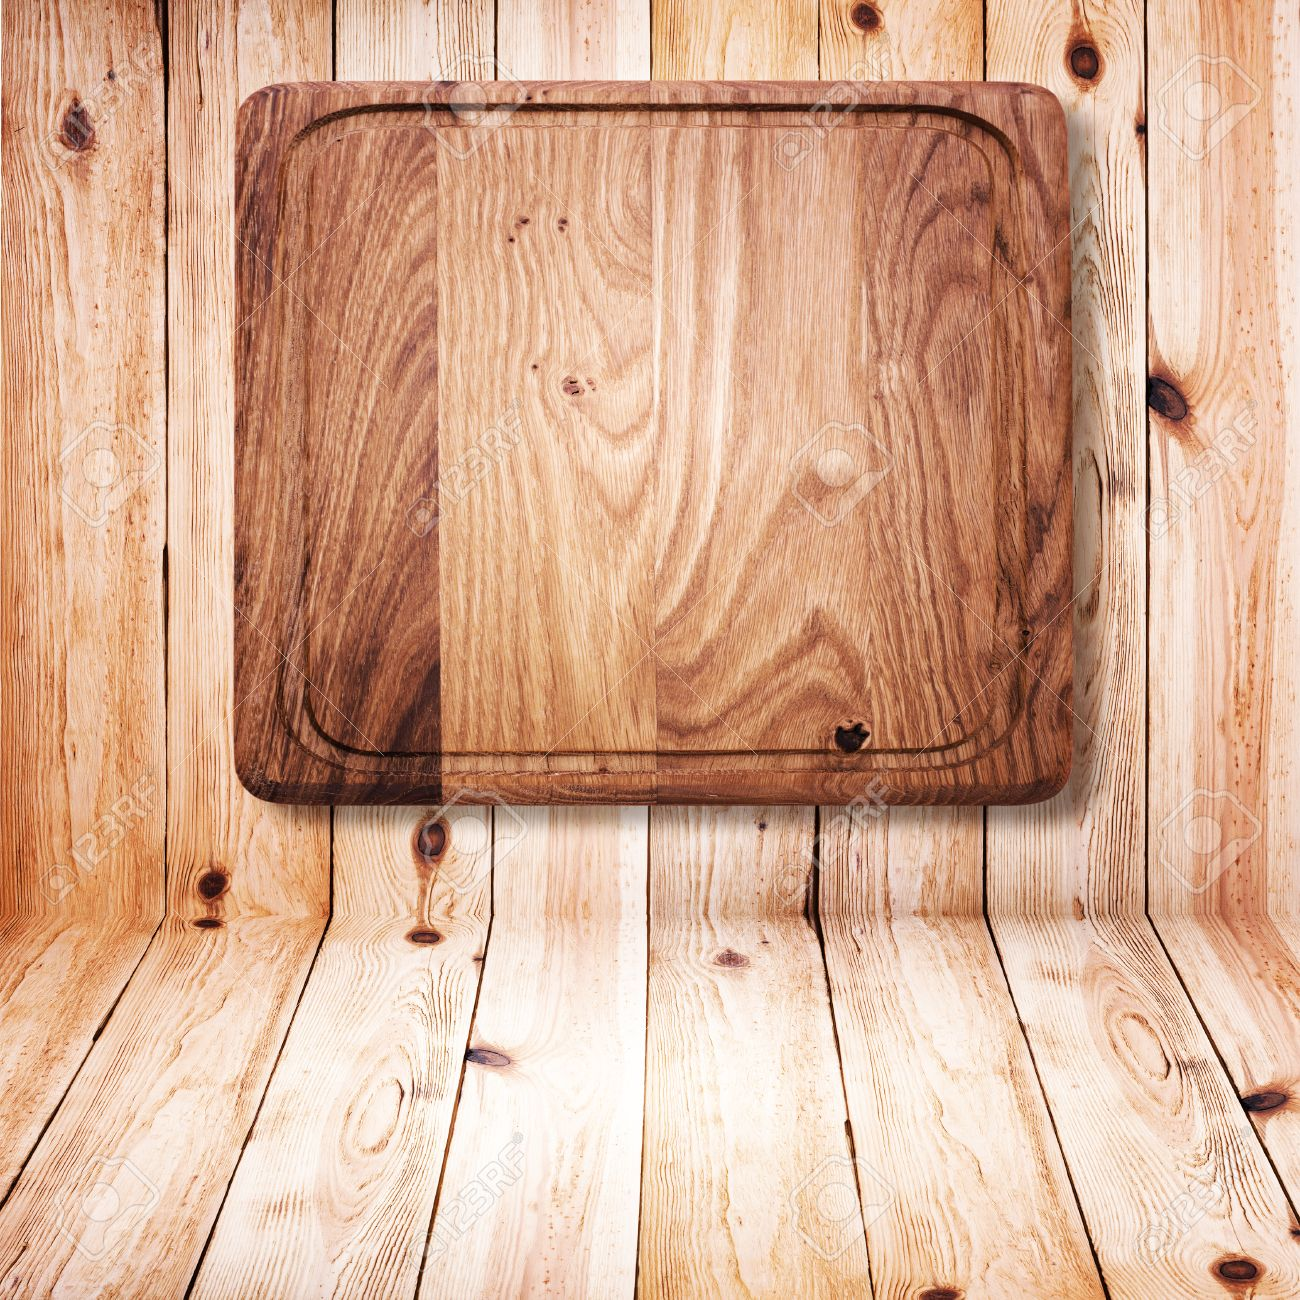 Stock Photo   Wood texture  Wooden kitchen cutting board close up  Empty wooden  table on white background for product montage  product page for recipes and. Wood Texture  Wooden Kitchen Cutting Board Close Up  Empty Wooden